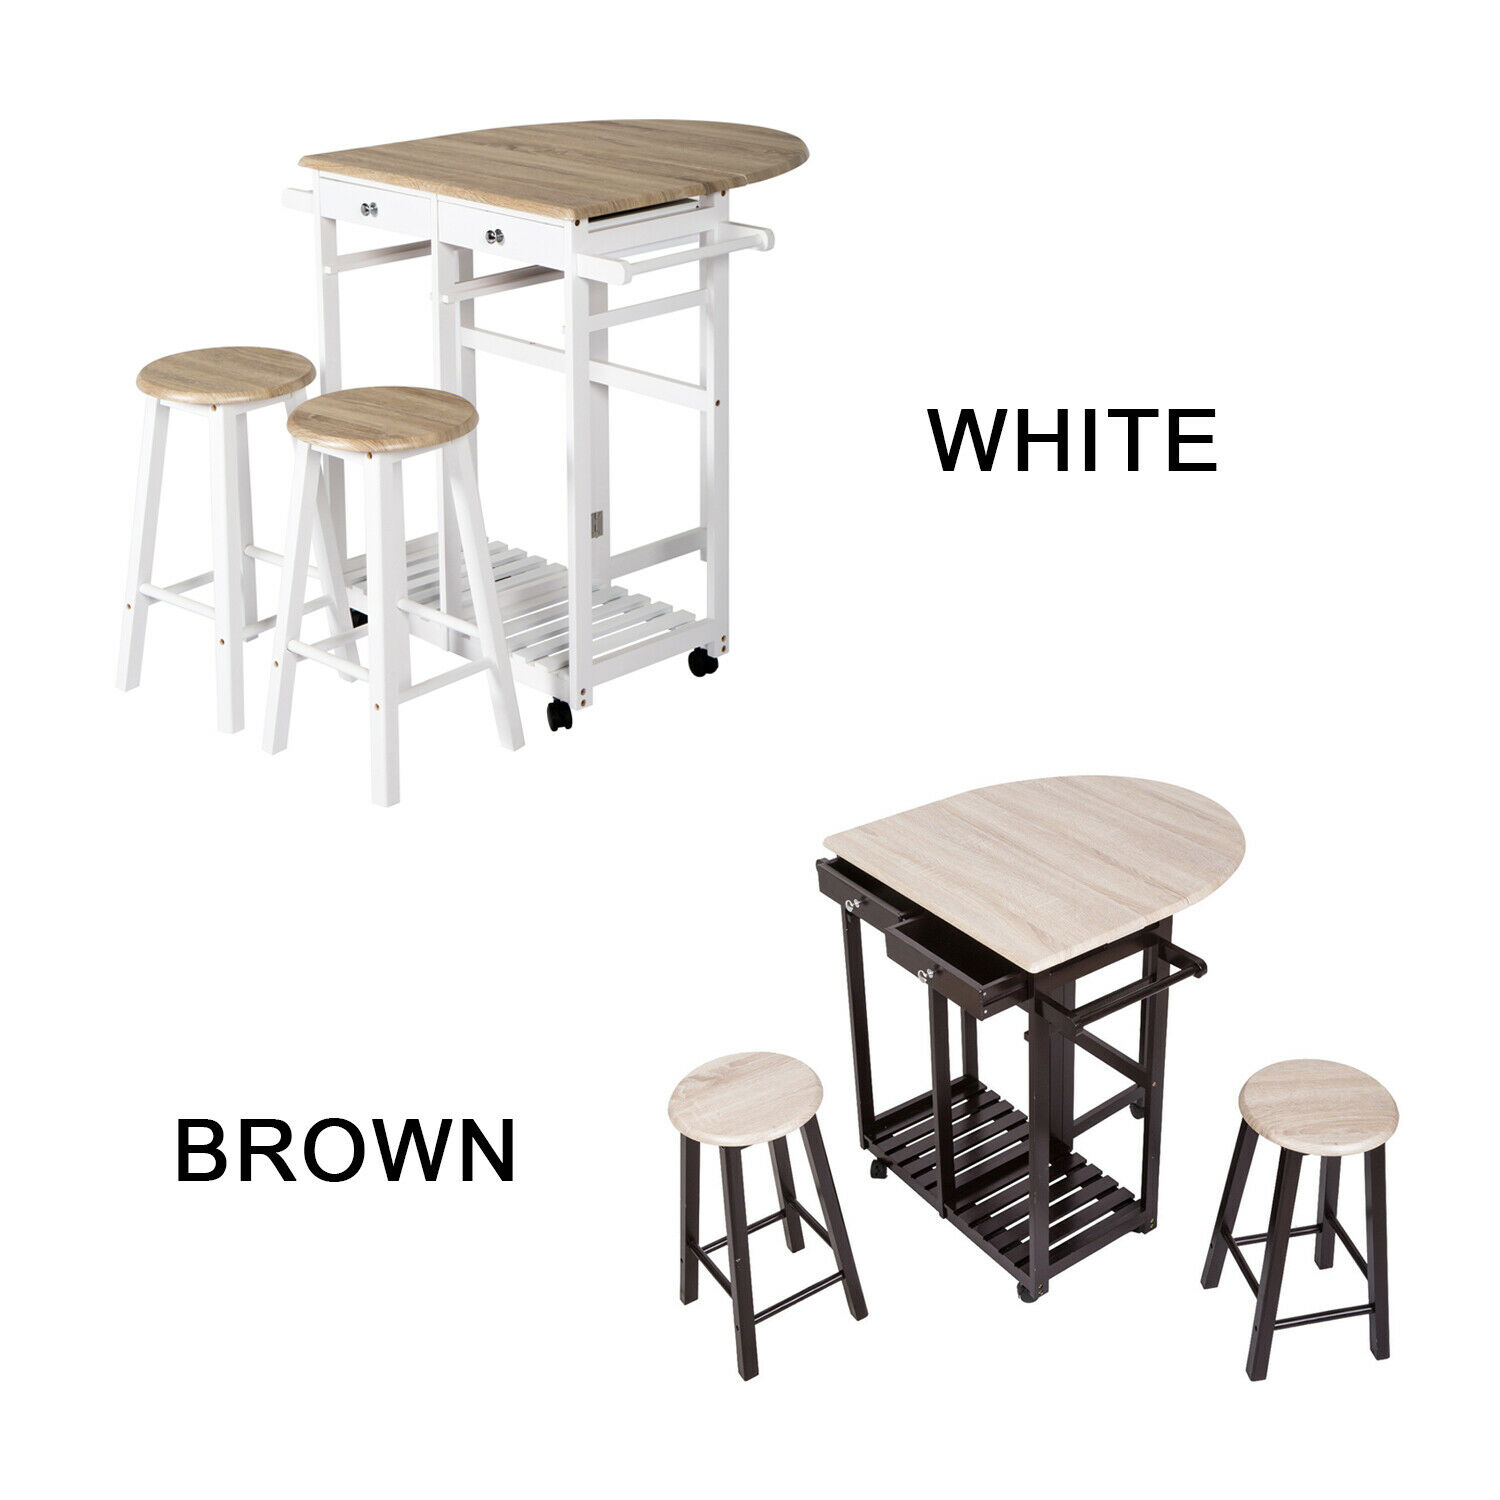 3 PC Wood Dining Set Drop Leaf Table W/Double Stool Kitchen